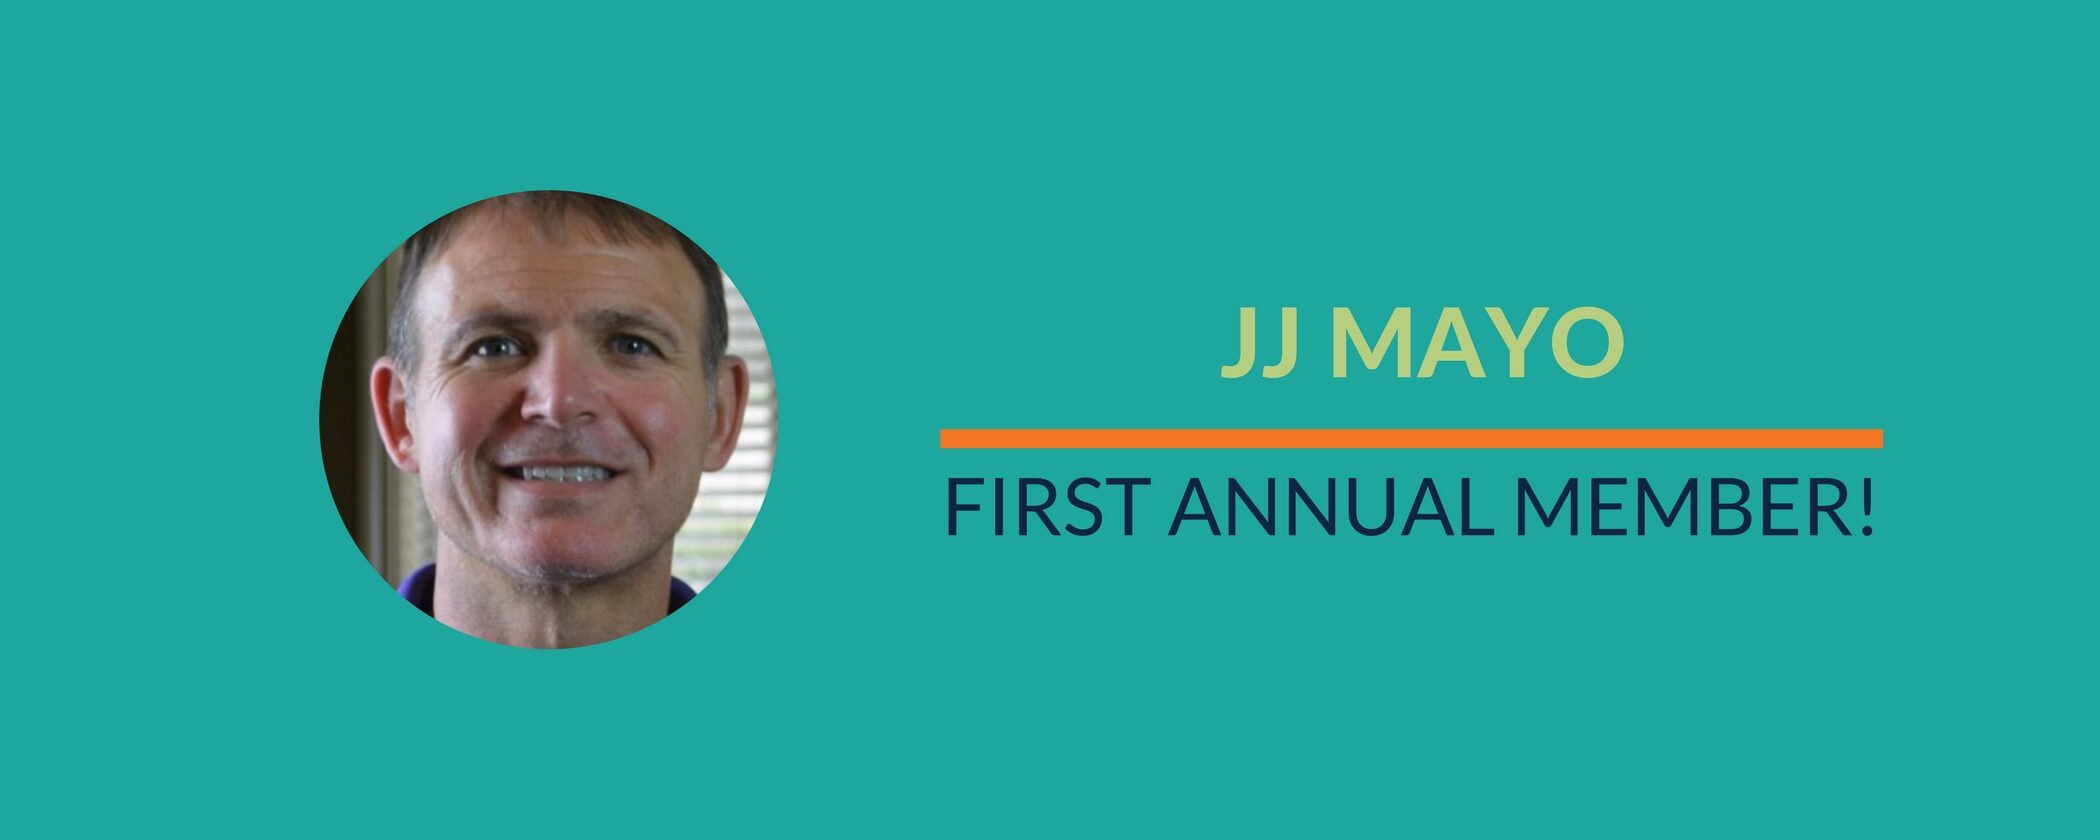 Success Story: Celebrating JJ's first annual member milestone!